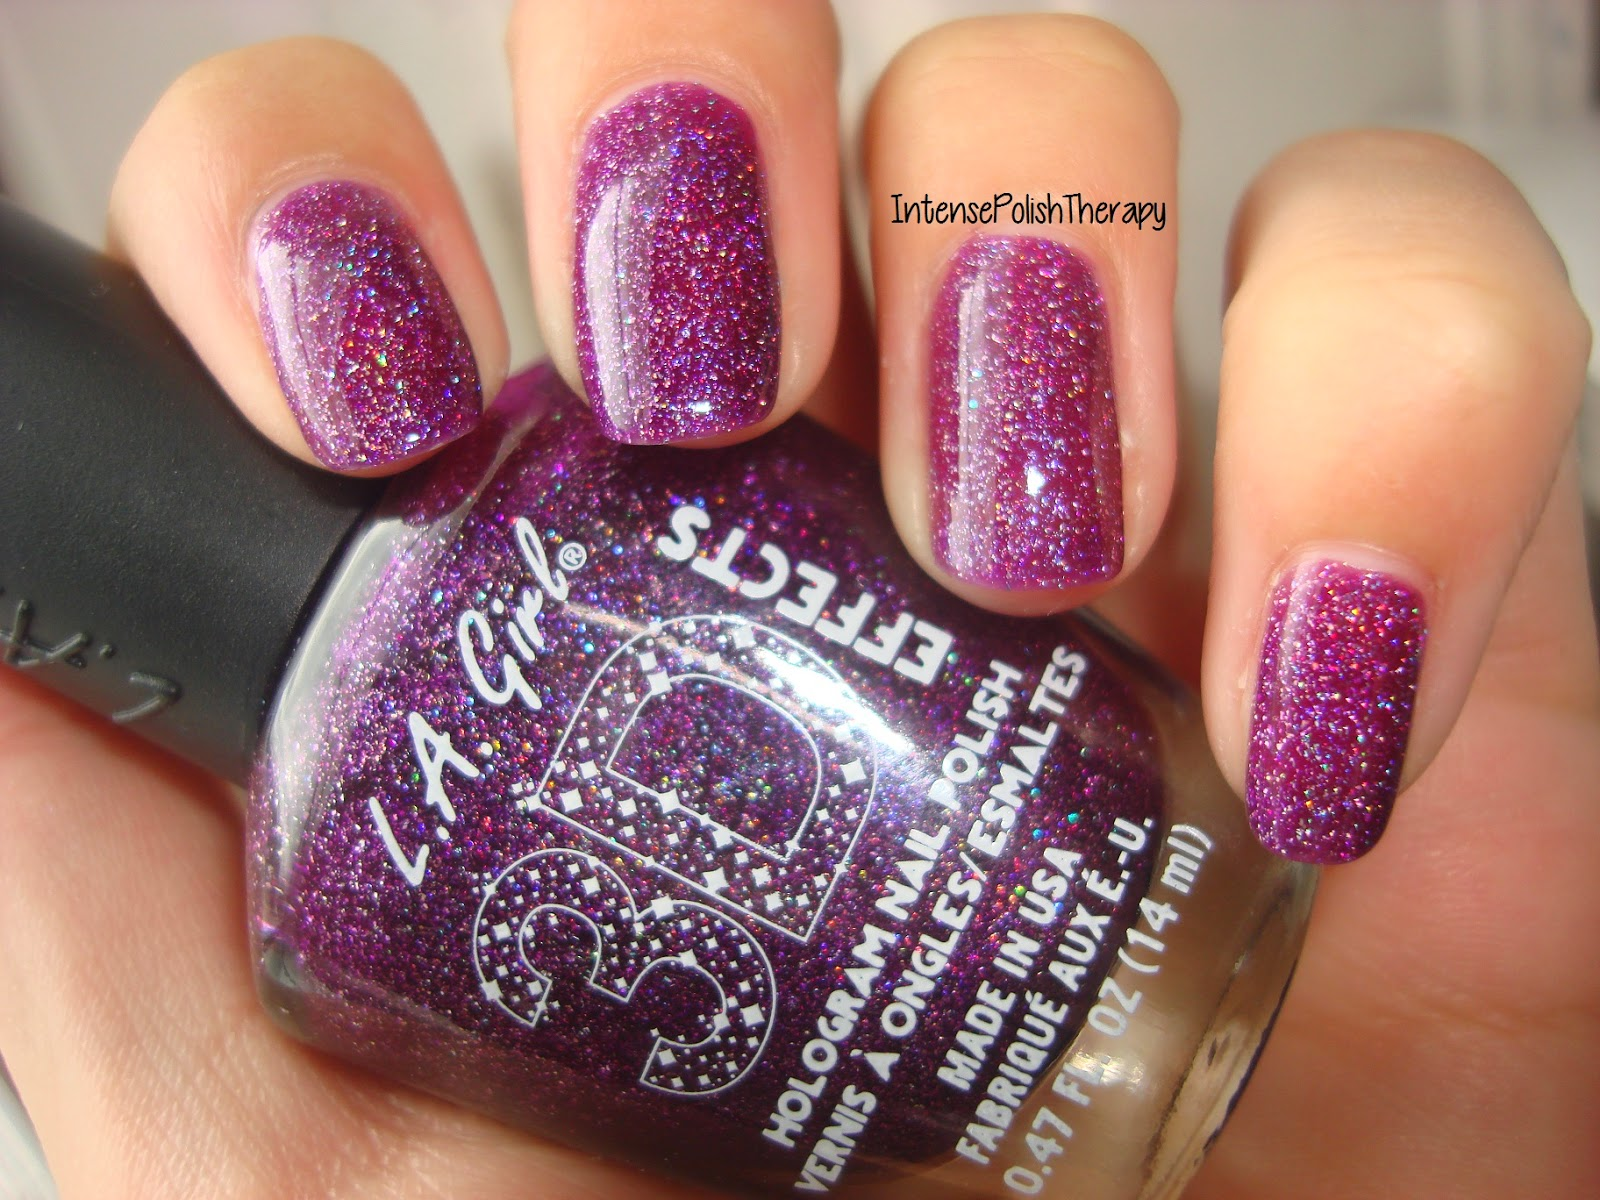 L.A. Girl - Purple Effect